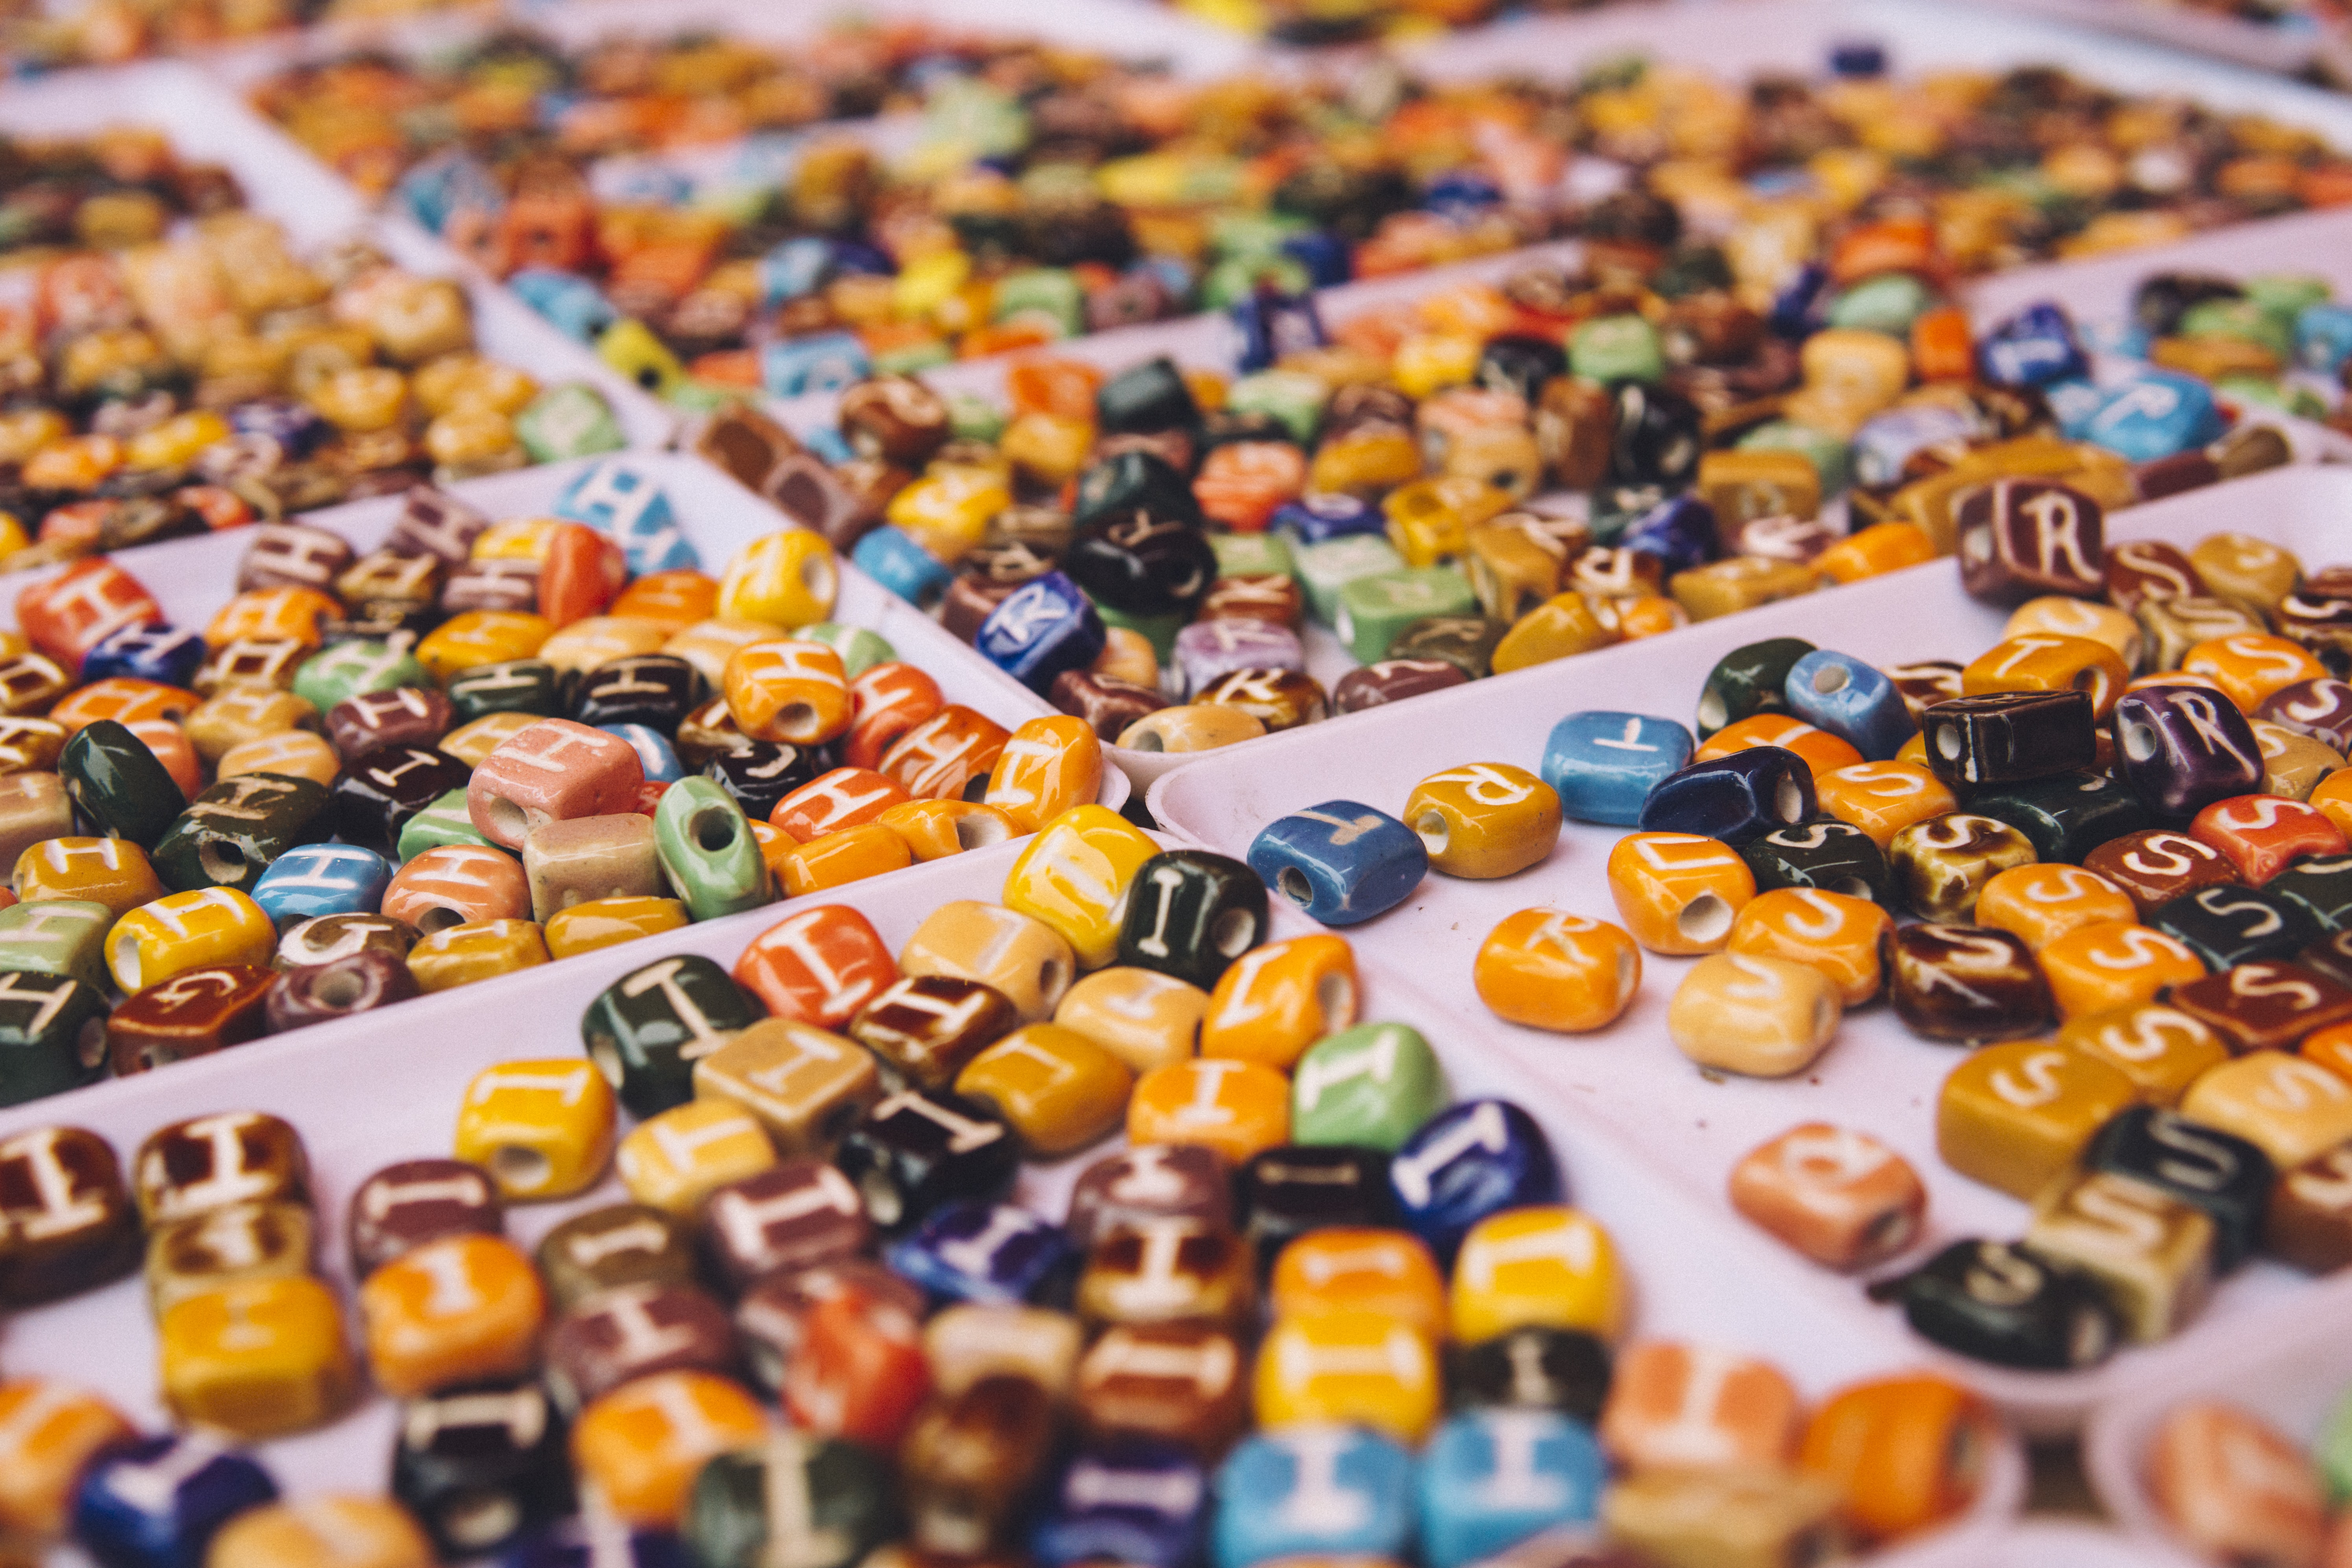 Trays of colorful beads with letters at a craft market